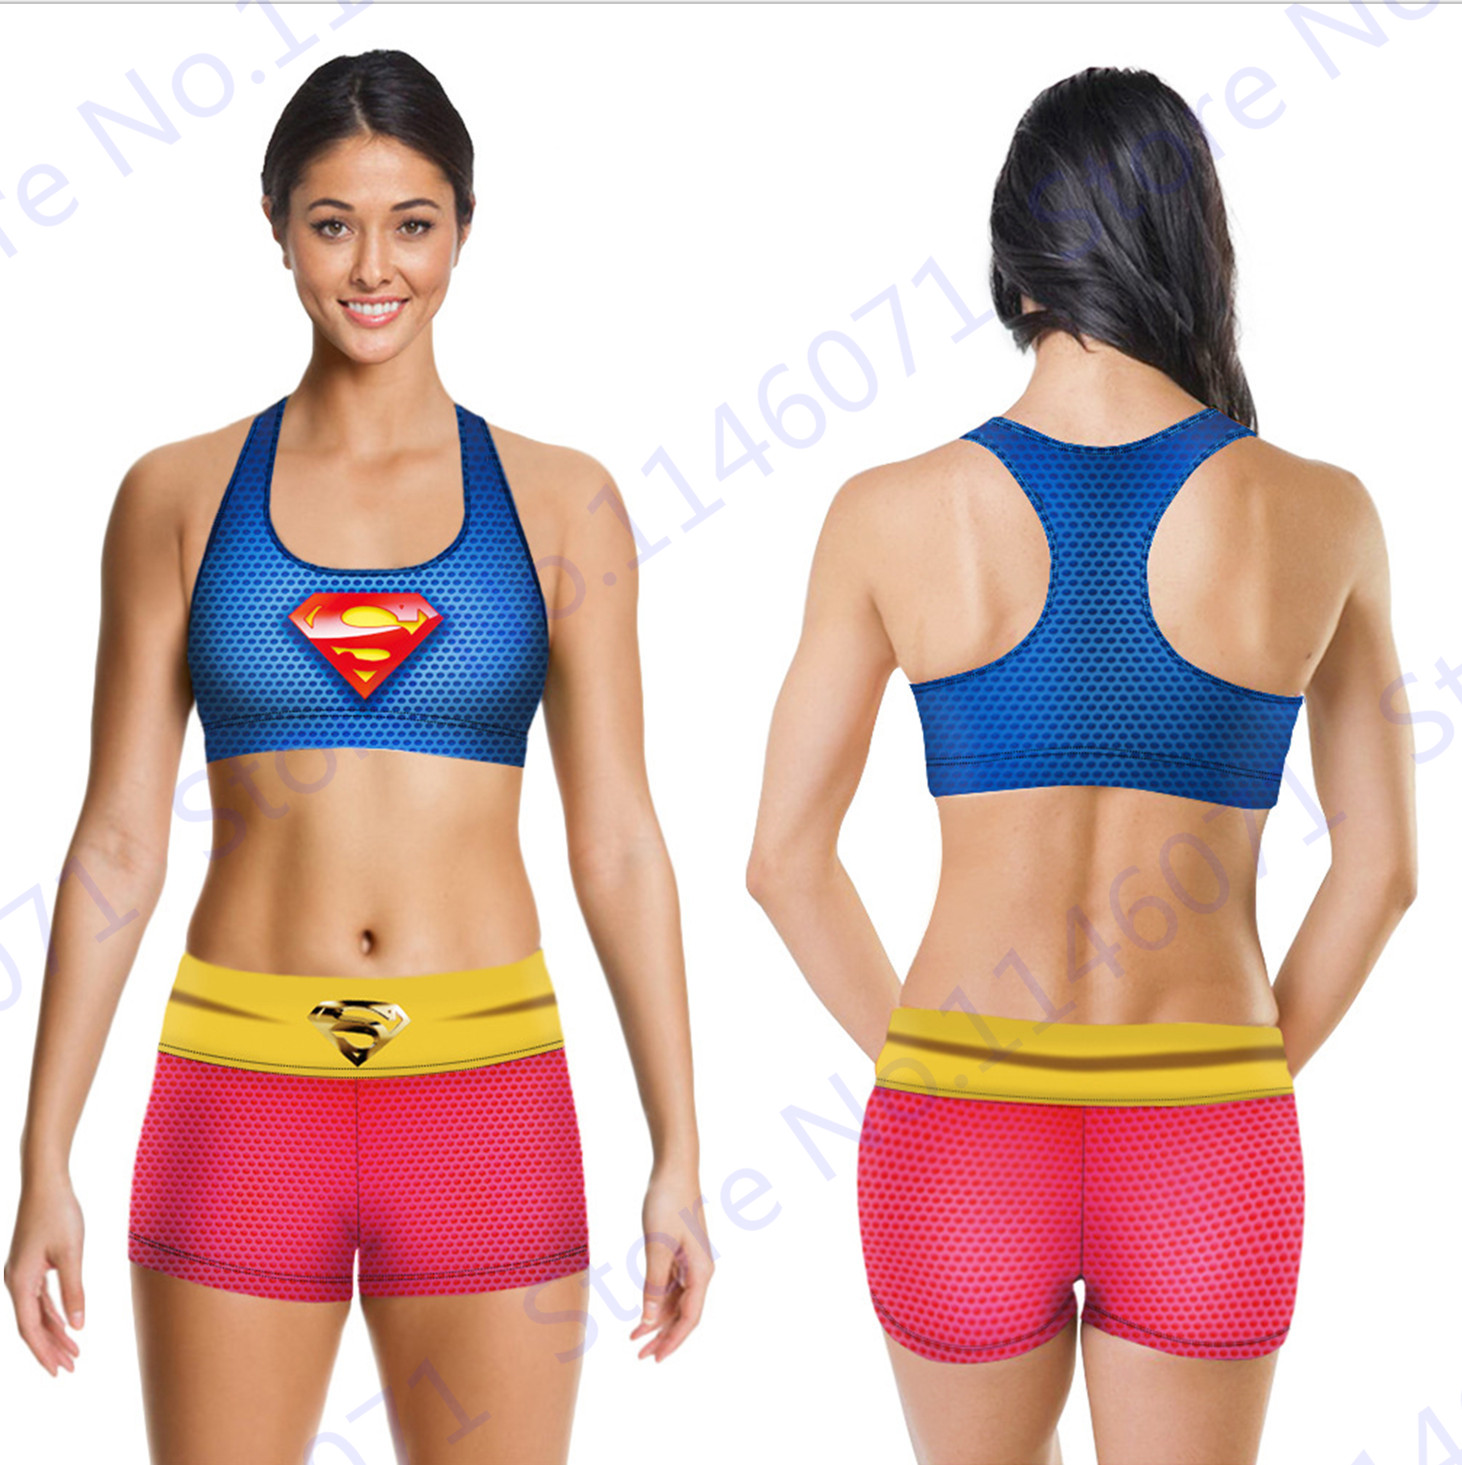 Online Buy Wholesale Yoga Shorts From China Yoga Shorts: Online Buy Wholesale Superman Sports Bra From China